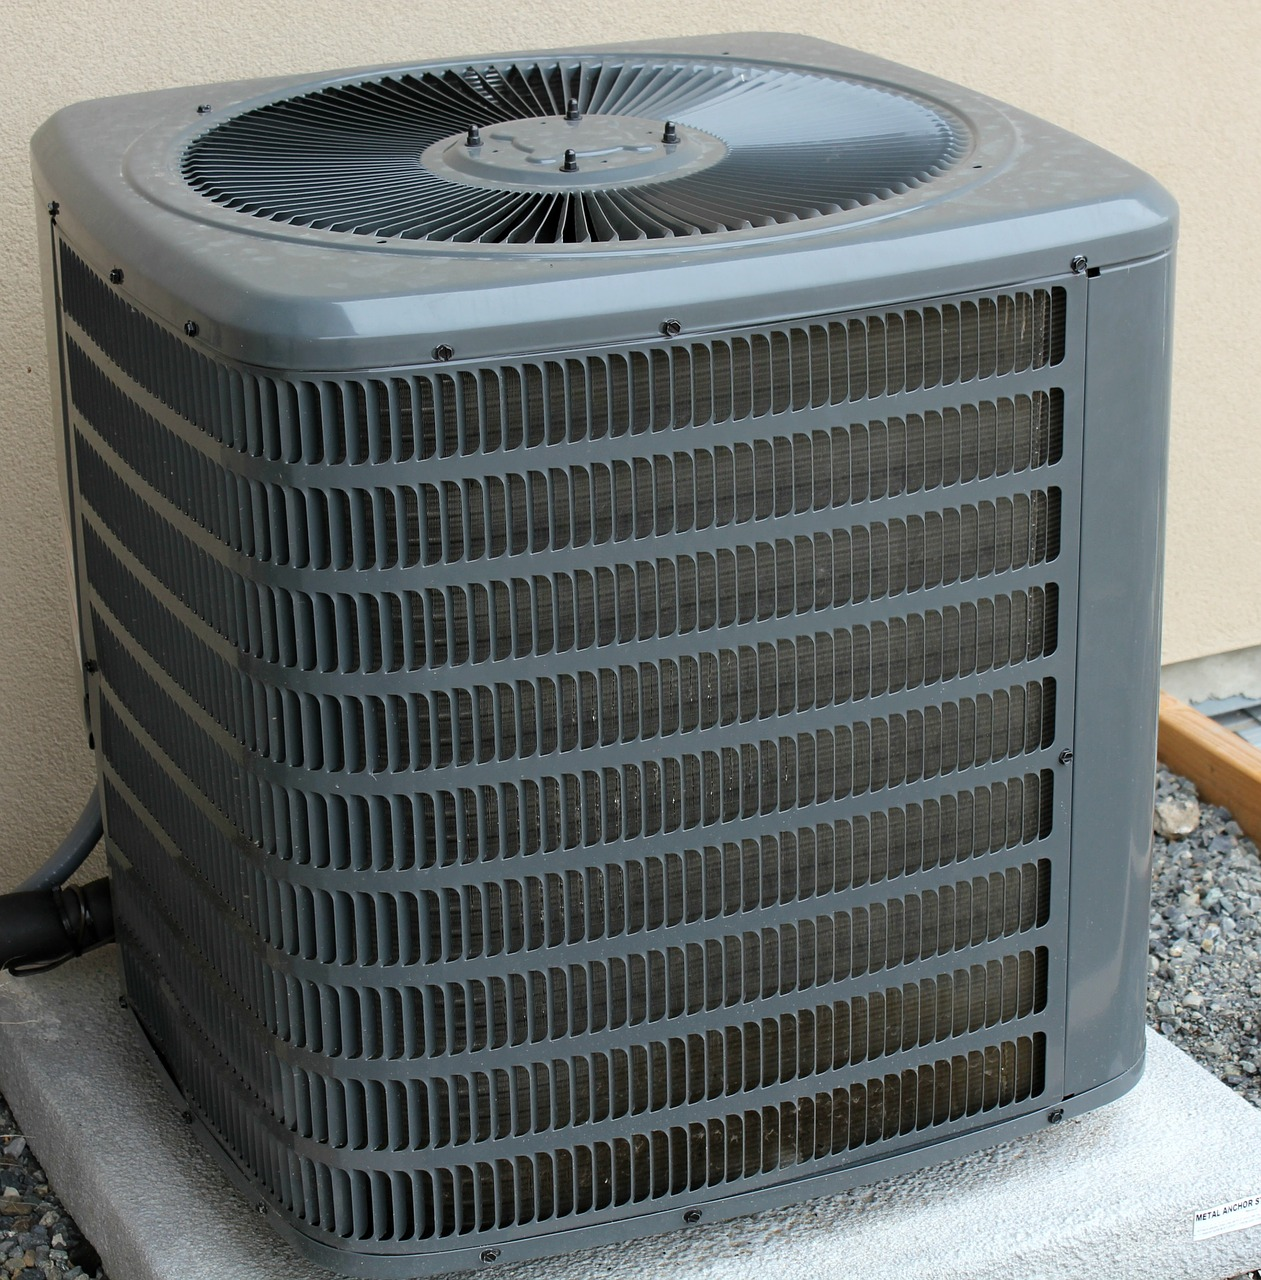 What Is The Best Air Conditioner Size For My Home?